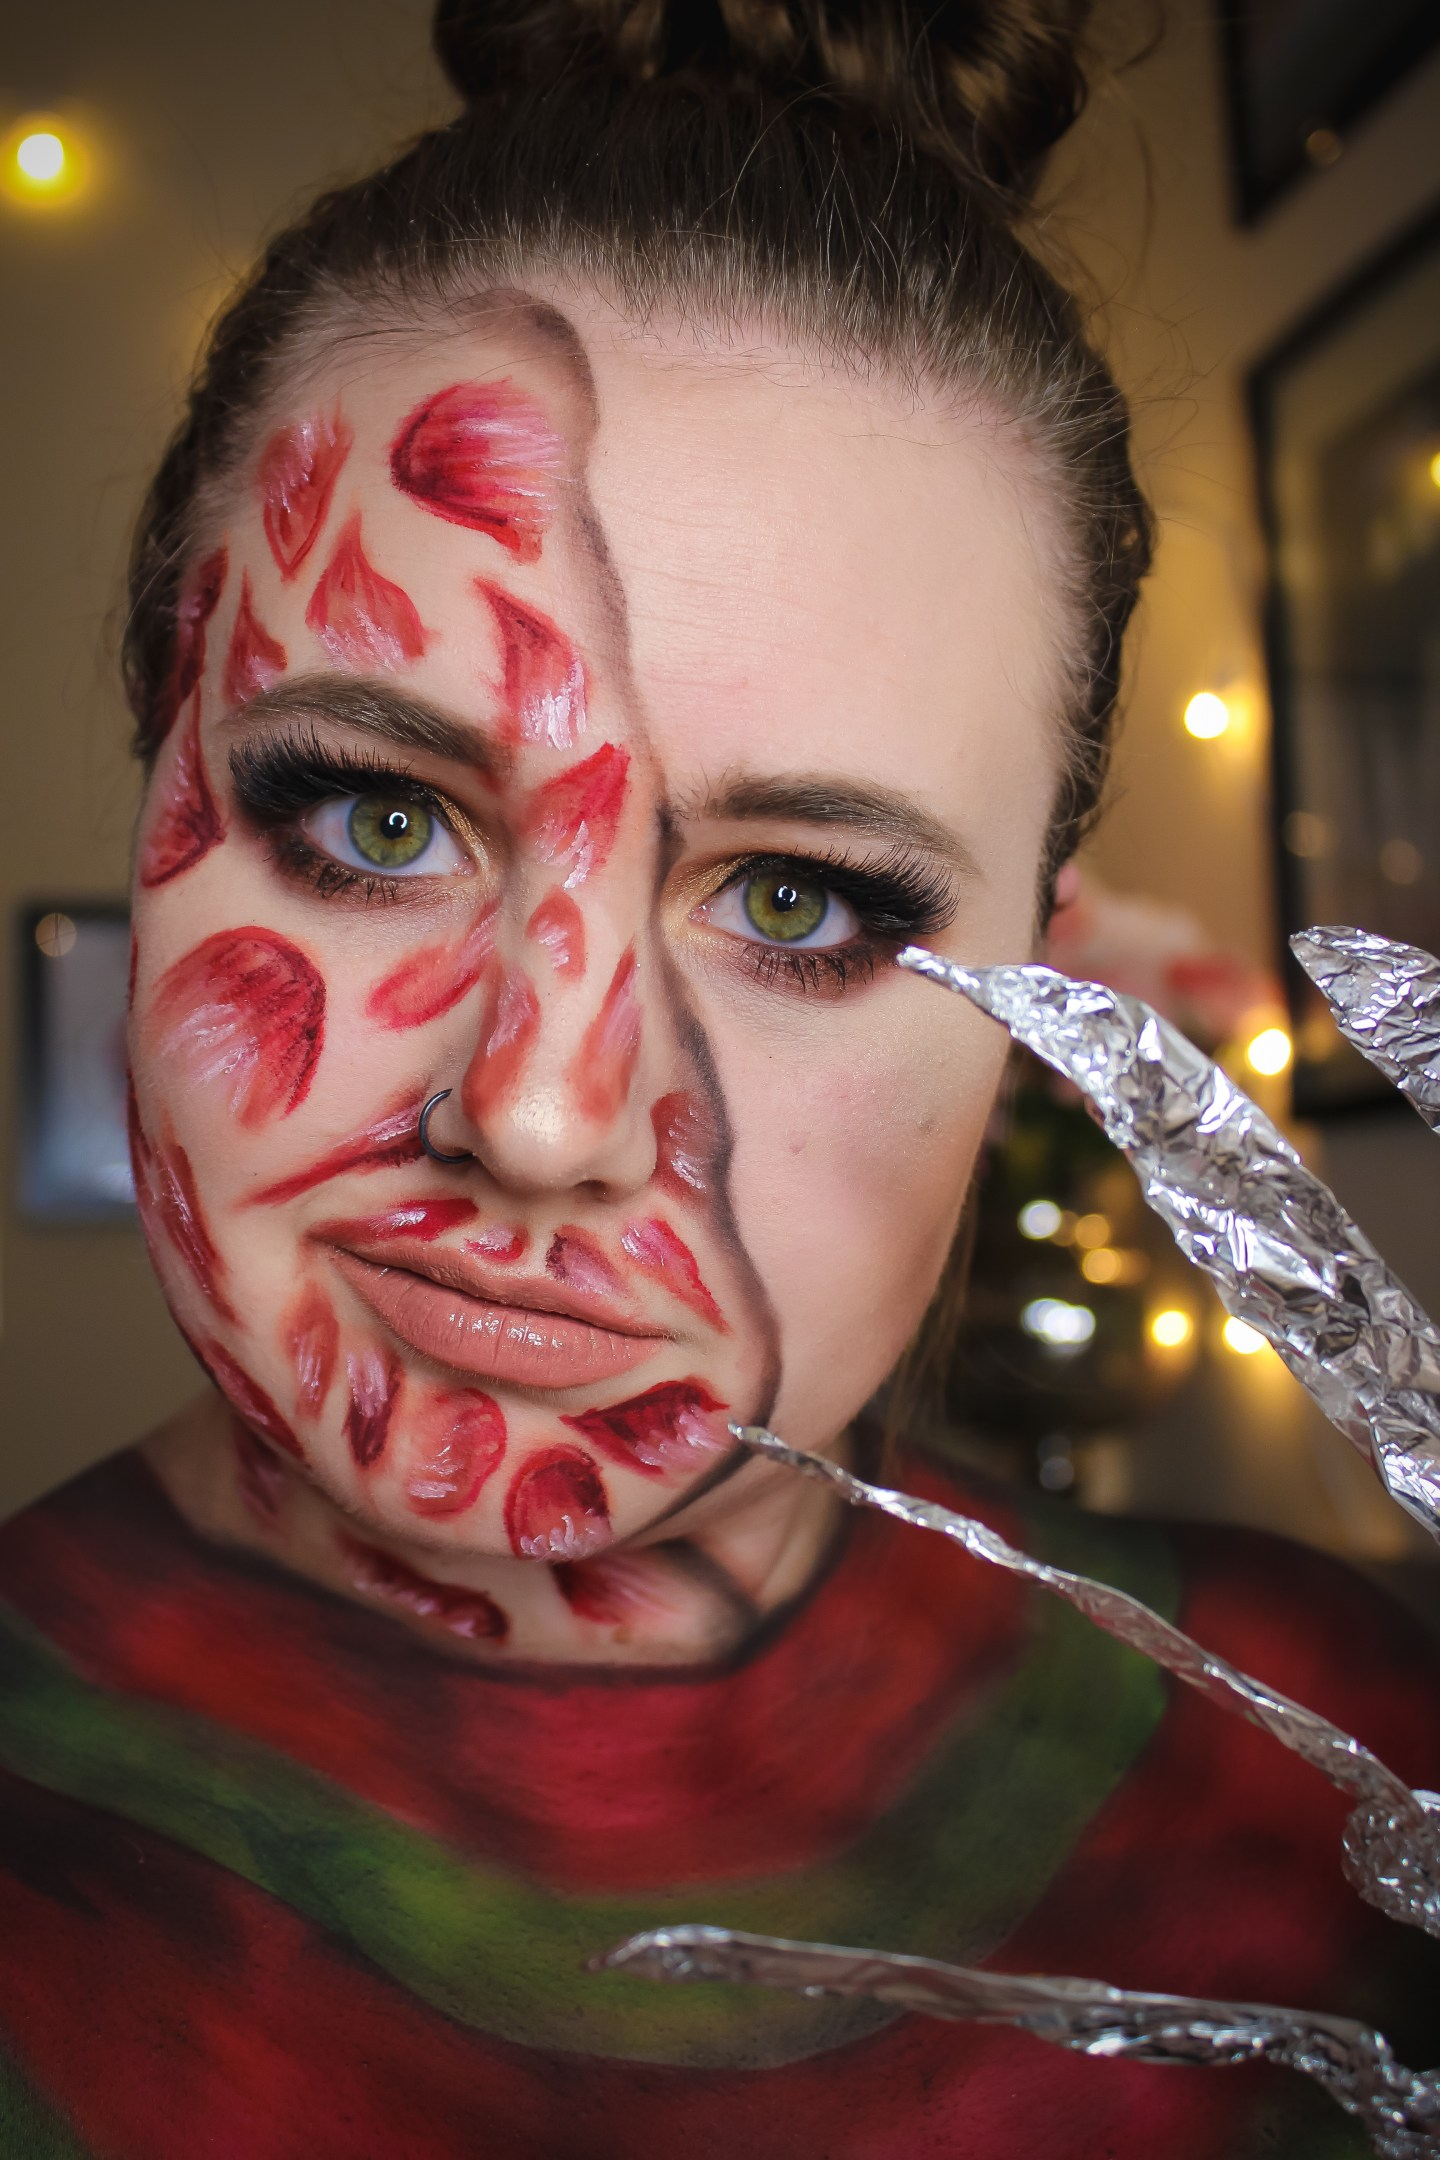 Why are you Screamin'? Freddy Krueger from A Nightmare on Elm Street Makeup Look 4